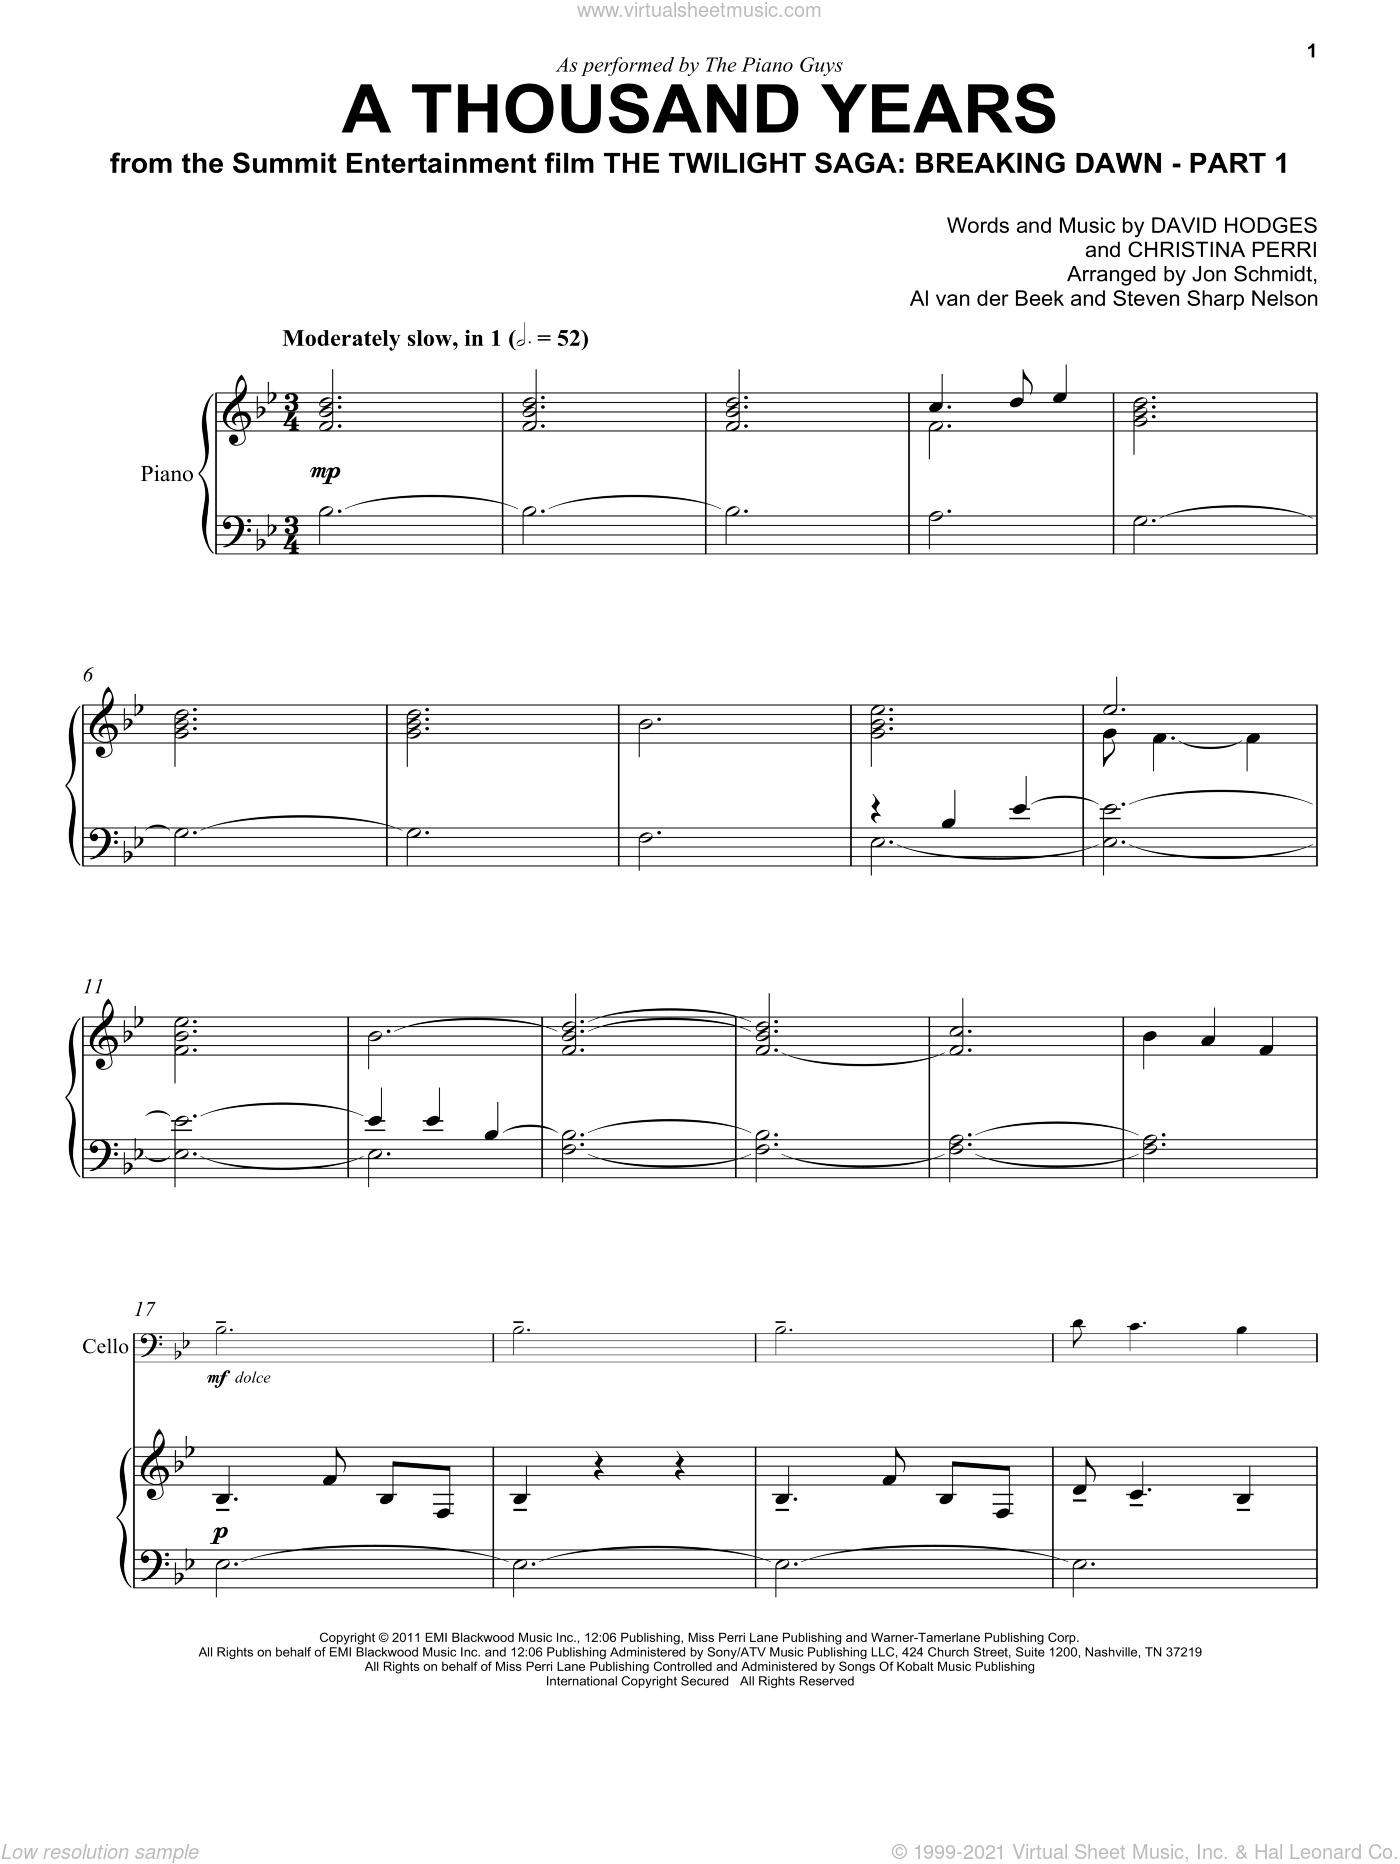 A Thousand Years sheet music for piano solo by David Hodges, Christina Perri and The Piano Guys. Score Image Preview.